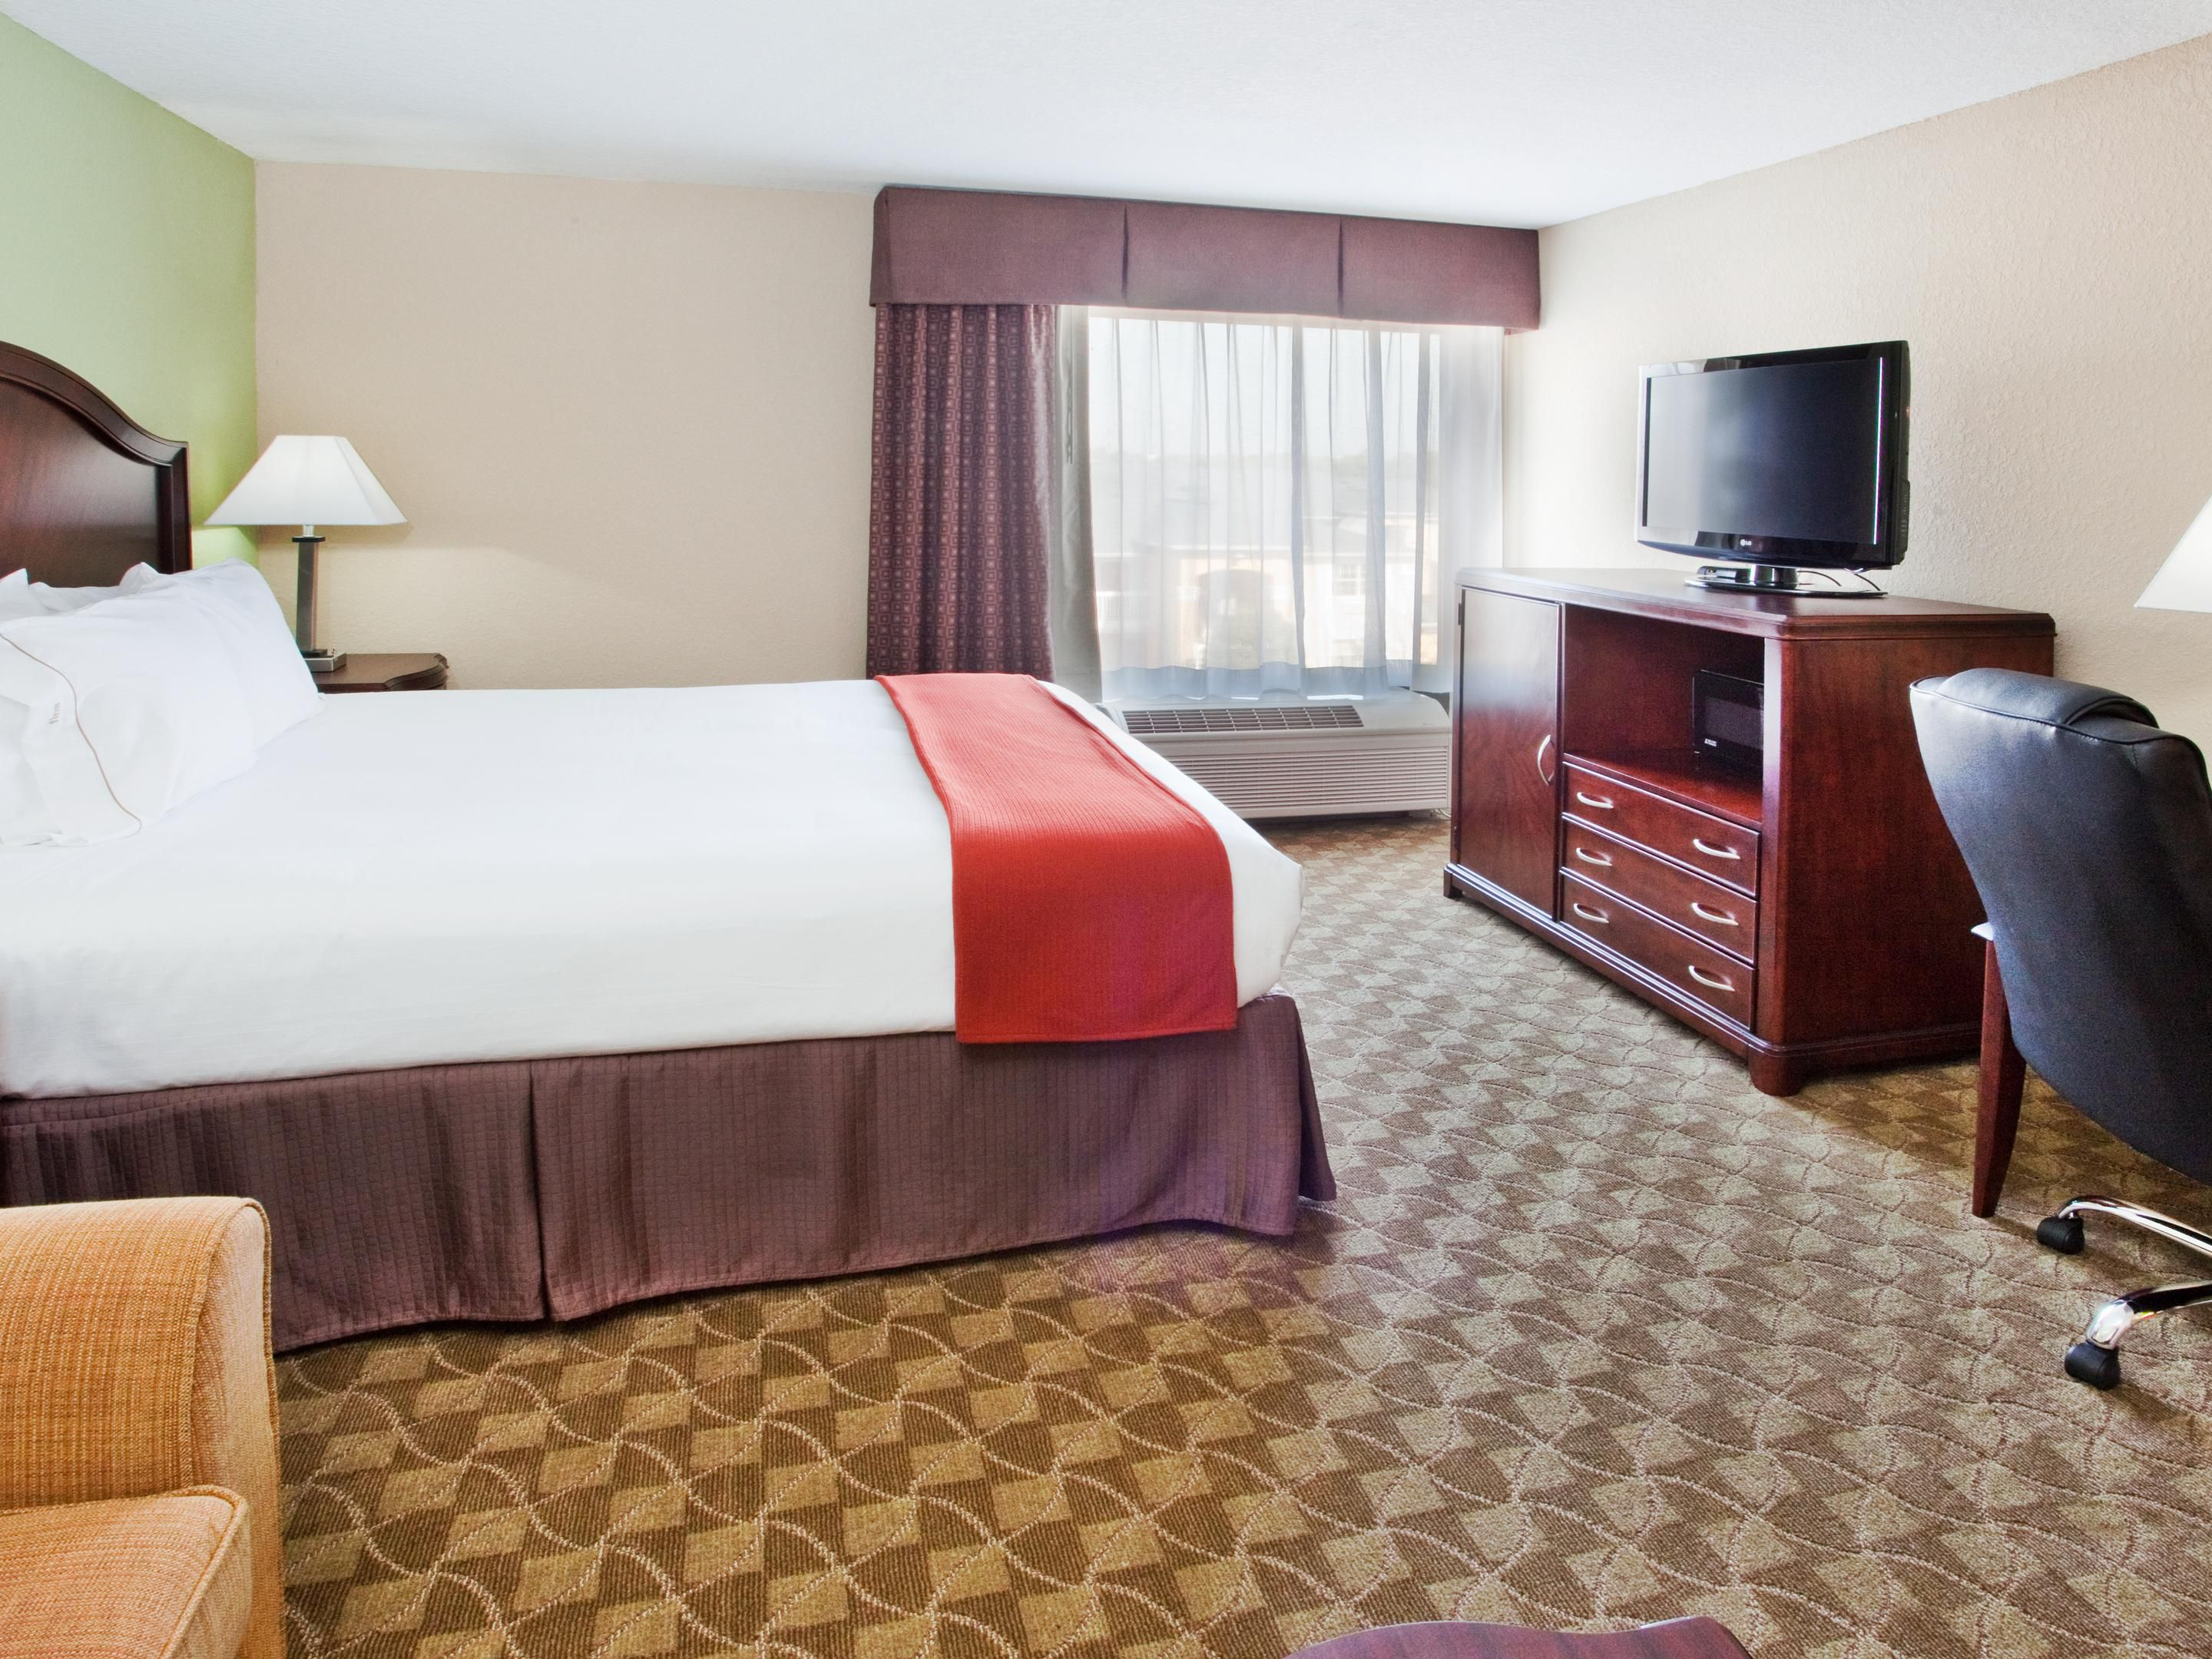 Our rooms are outfitted with all the essentials and more!